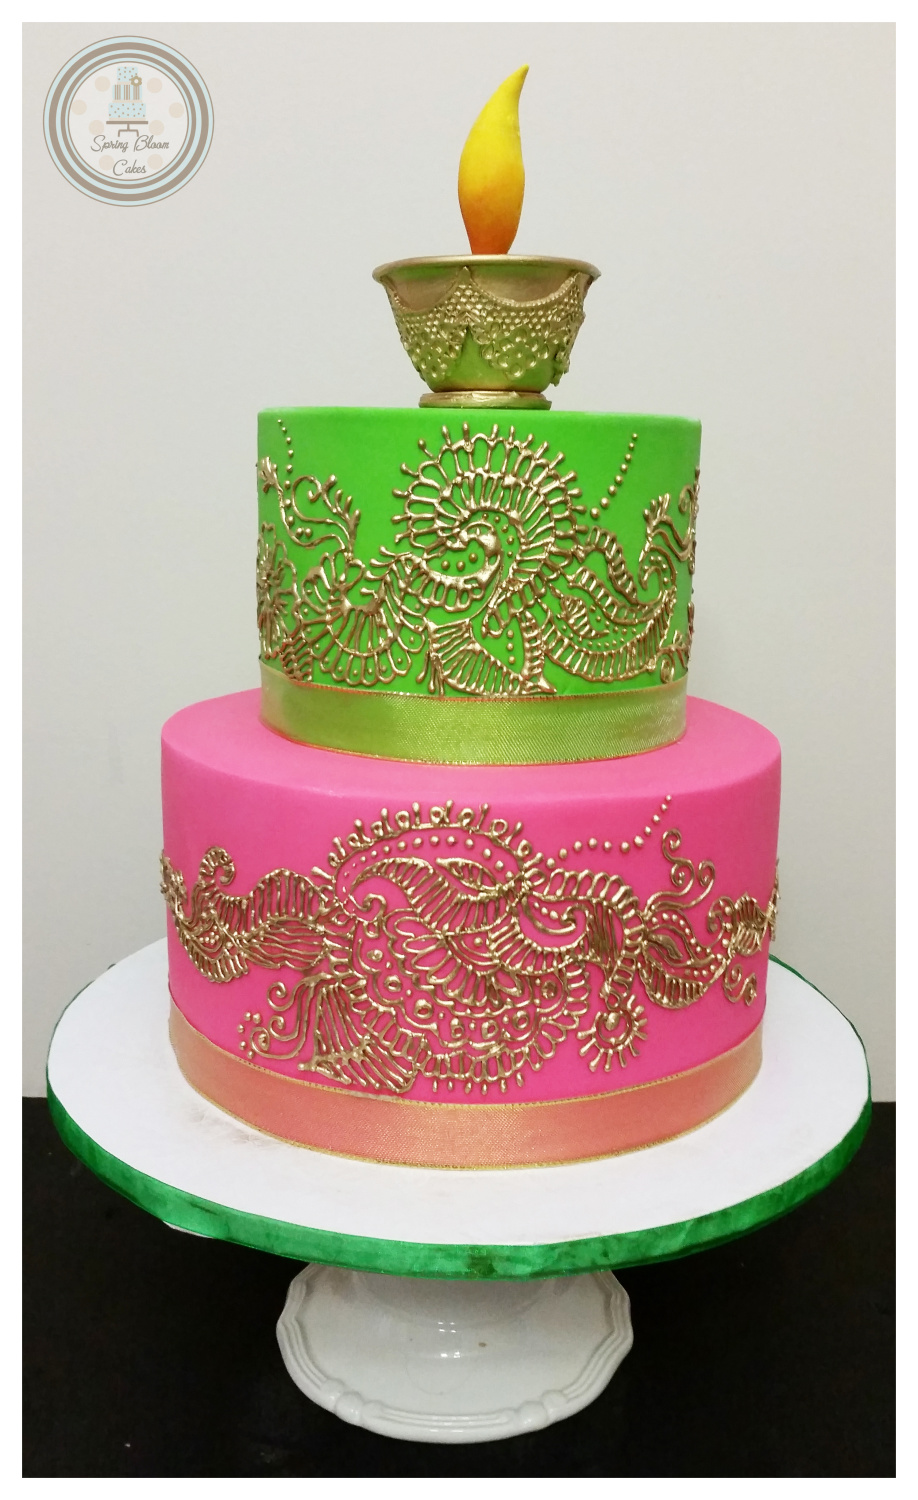 This bold cake is from Deepa Mathan at Spring Bloom Cakes. They specialise in custom made wedding cakes an are based in Ajax, Ontario. We love the bright colours in this cake, paired with the amazing gold Henna design. It looks perfect for a birthday celebration and will really wow.